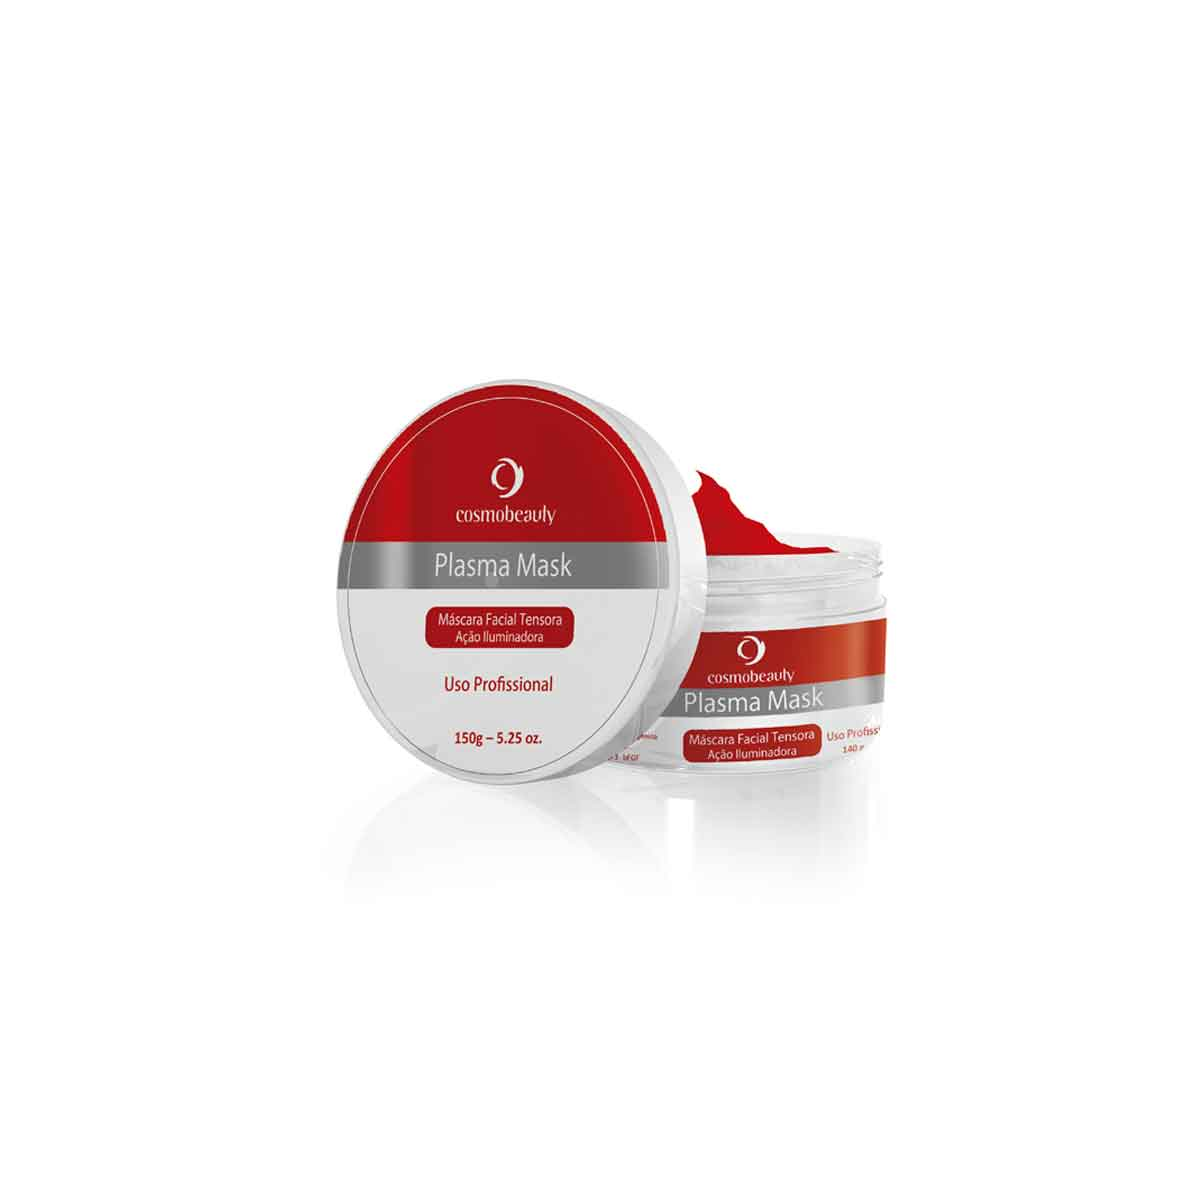 Máscara Facial Plasma Mask - 140g